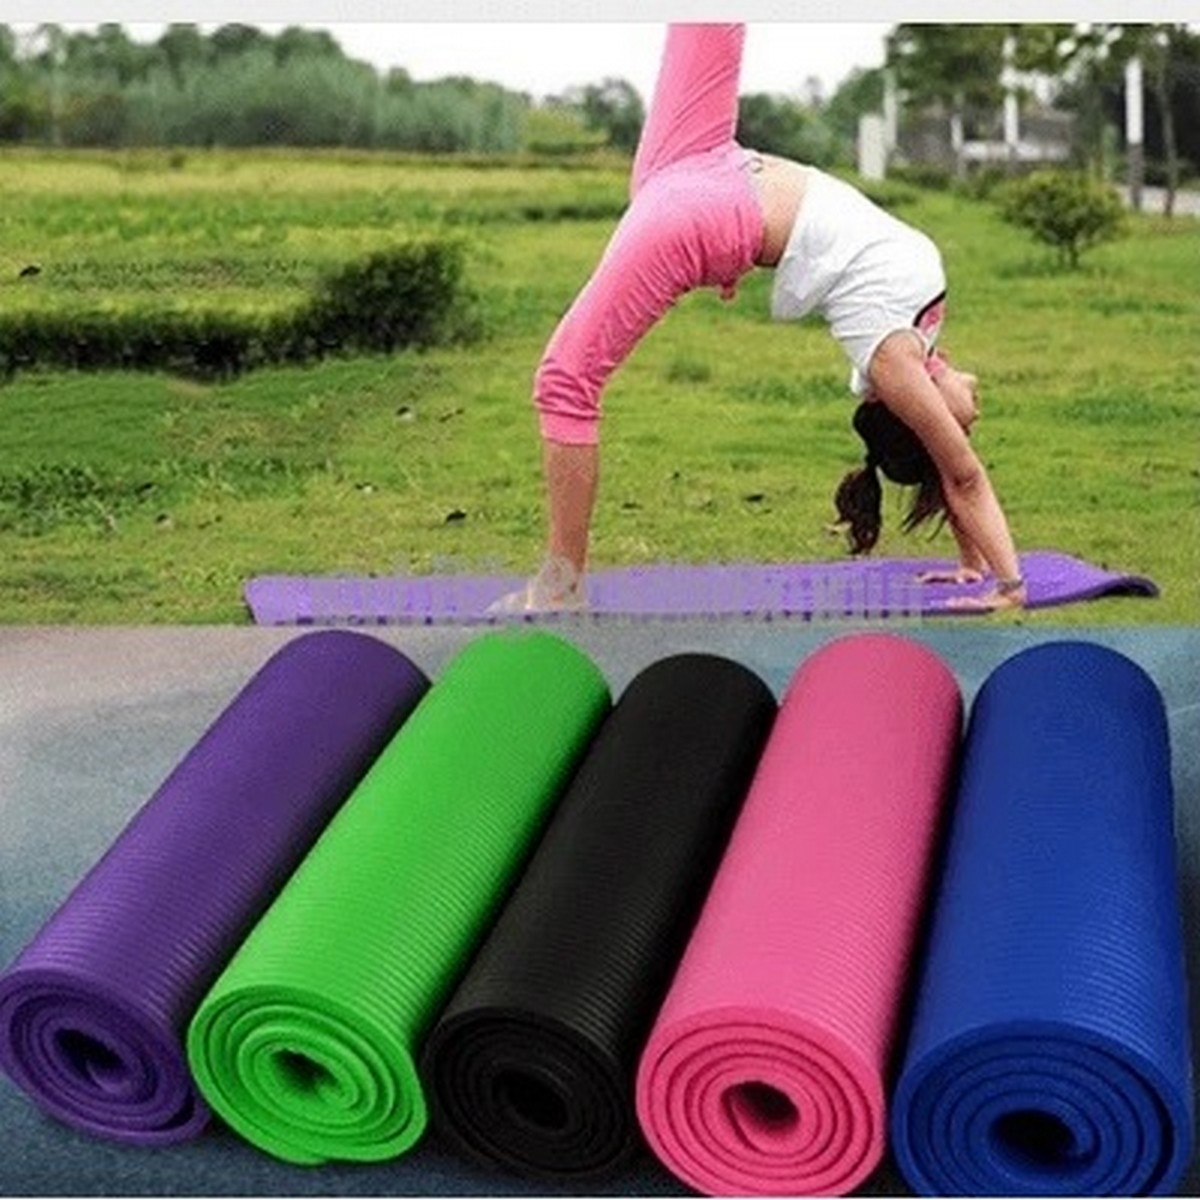 2 x 6 feet Yoga Mat with 4 & 5 & 6 mm thickness